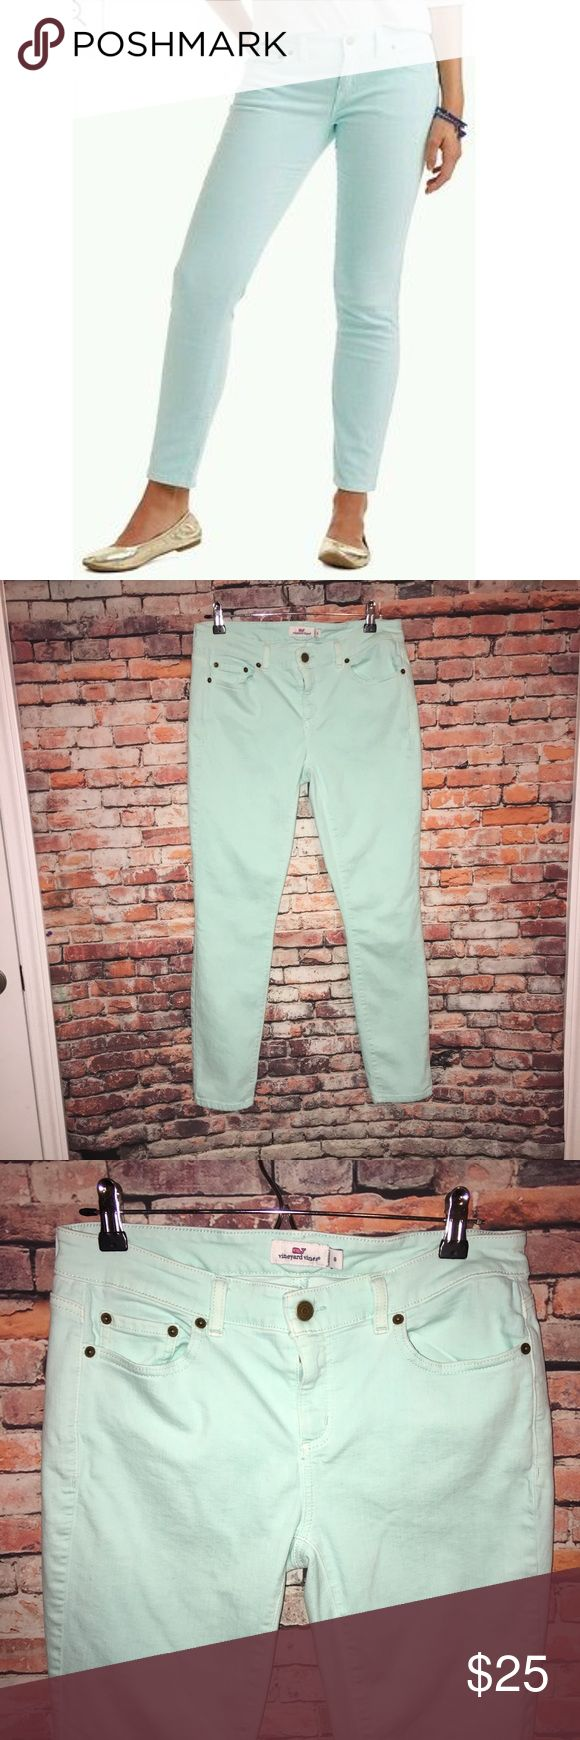 Vineyard Vines Mint Pants Jeans Size 8 In excellent condition! Like new! Pet and smoke free home. They are a cotton blends with a perfect flattering stretch to them. Very flattering on;) Vineyard Vines Jeans Skinny